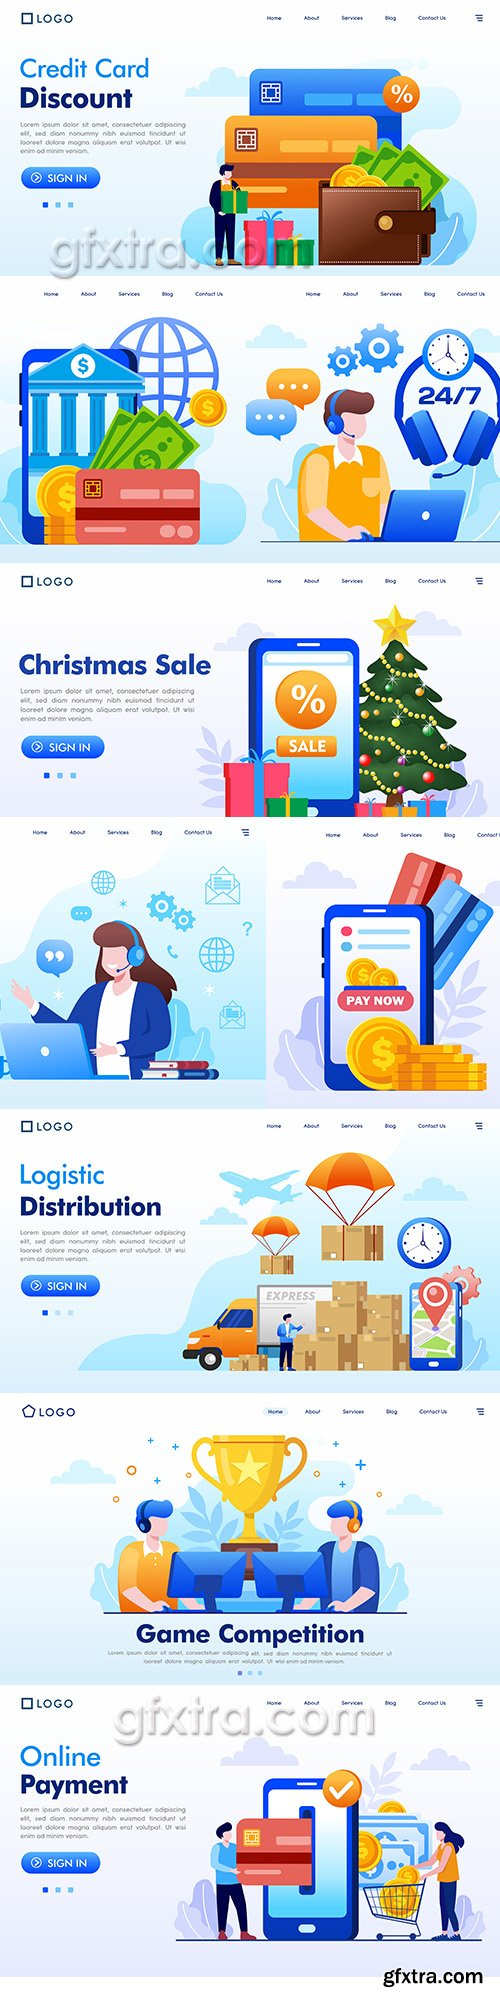 Illustrations website landing page business internet technology